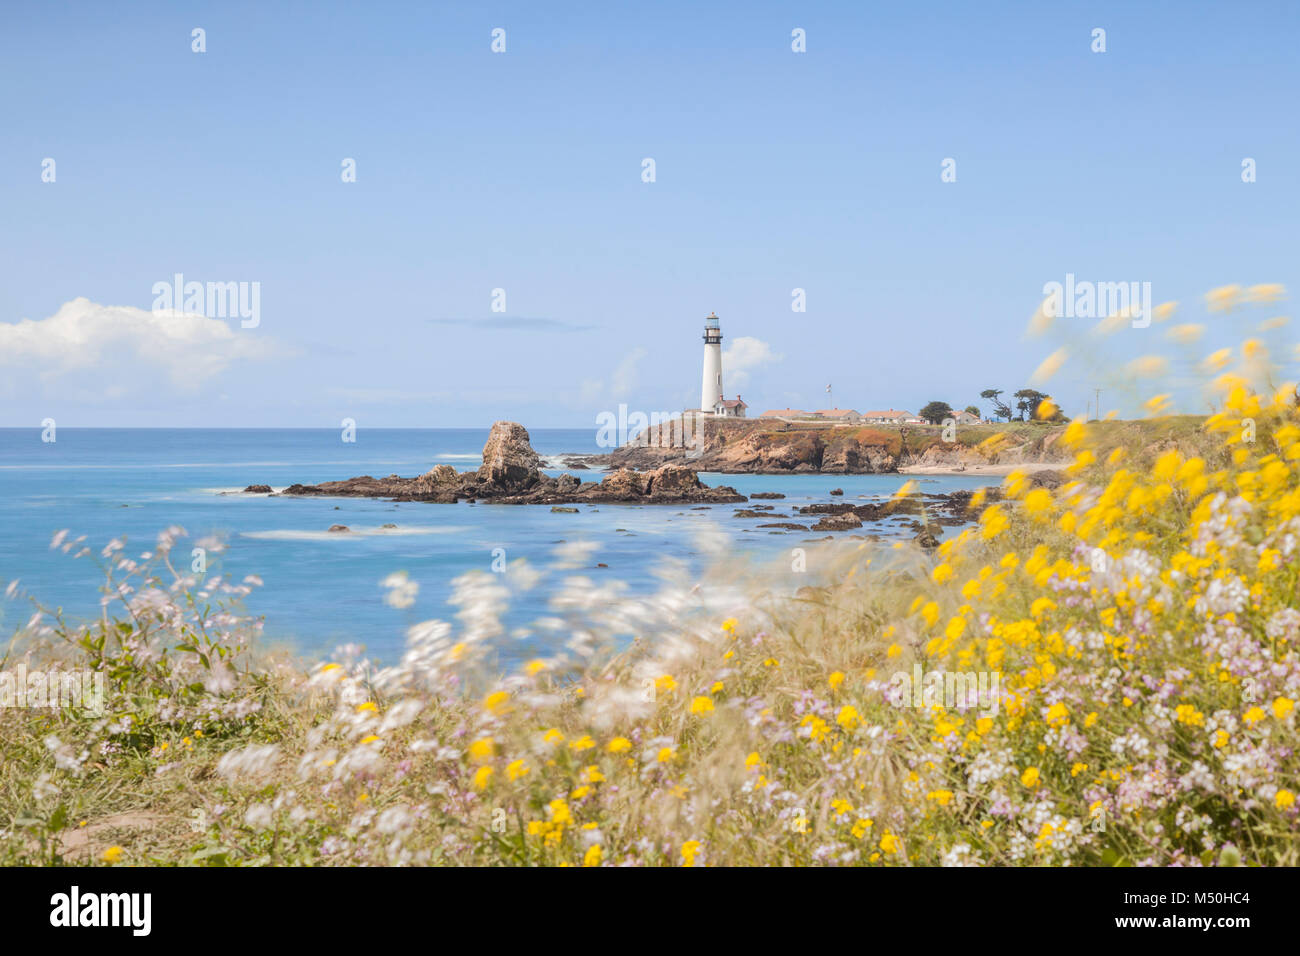 Pigeon Point Lighthouse on a windy spring day, focus on lighthouse, foreground flowers are blowing in the wind. - Stock Image